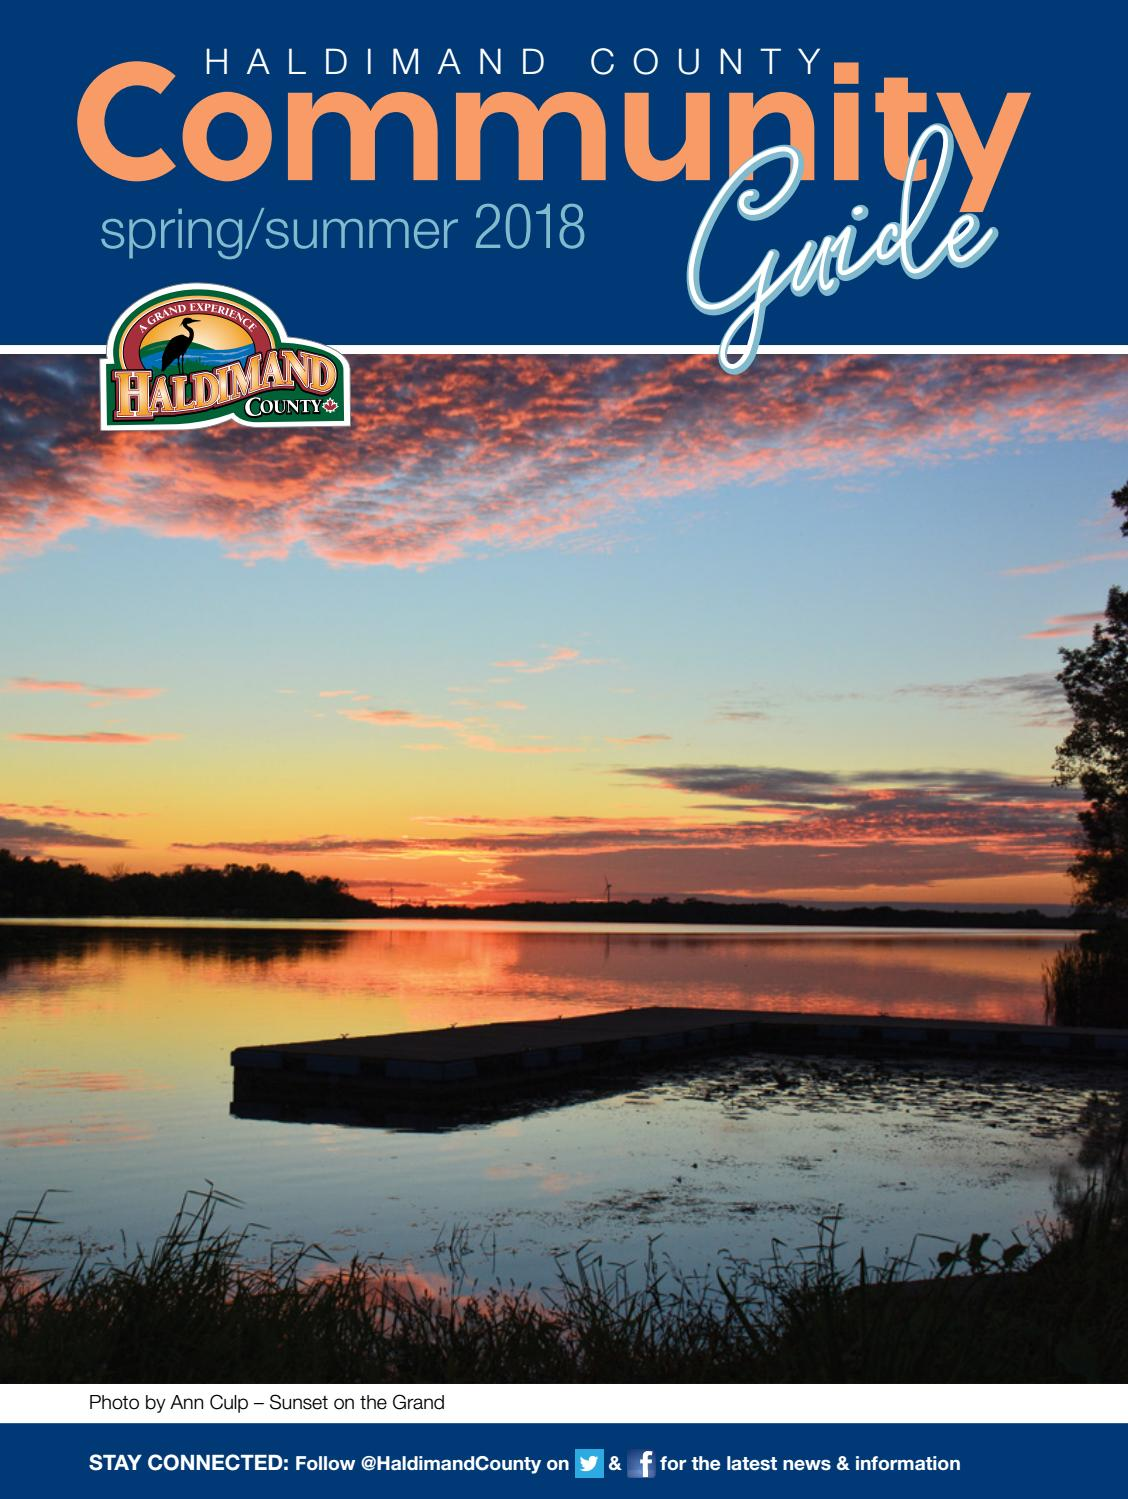 Haldimand County Spring/Summer 2018 Community Guide by